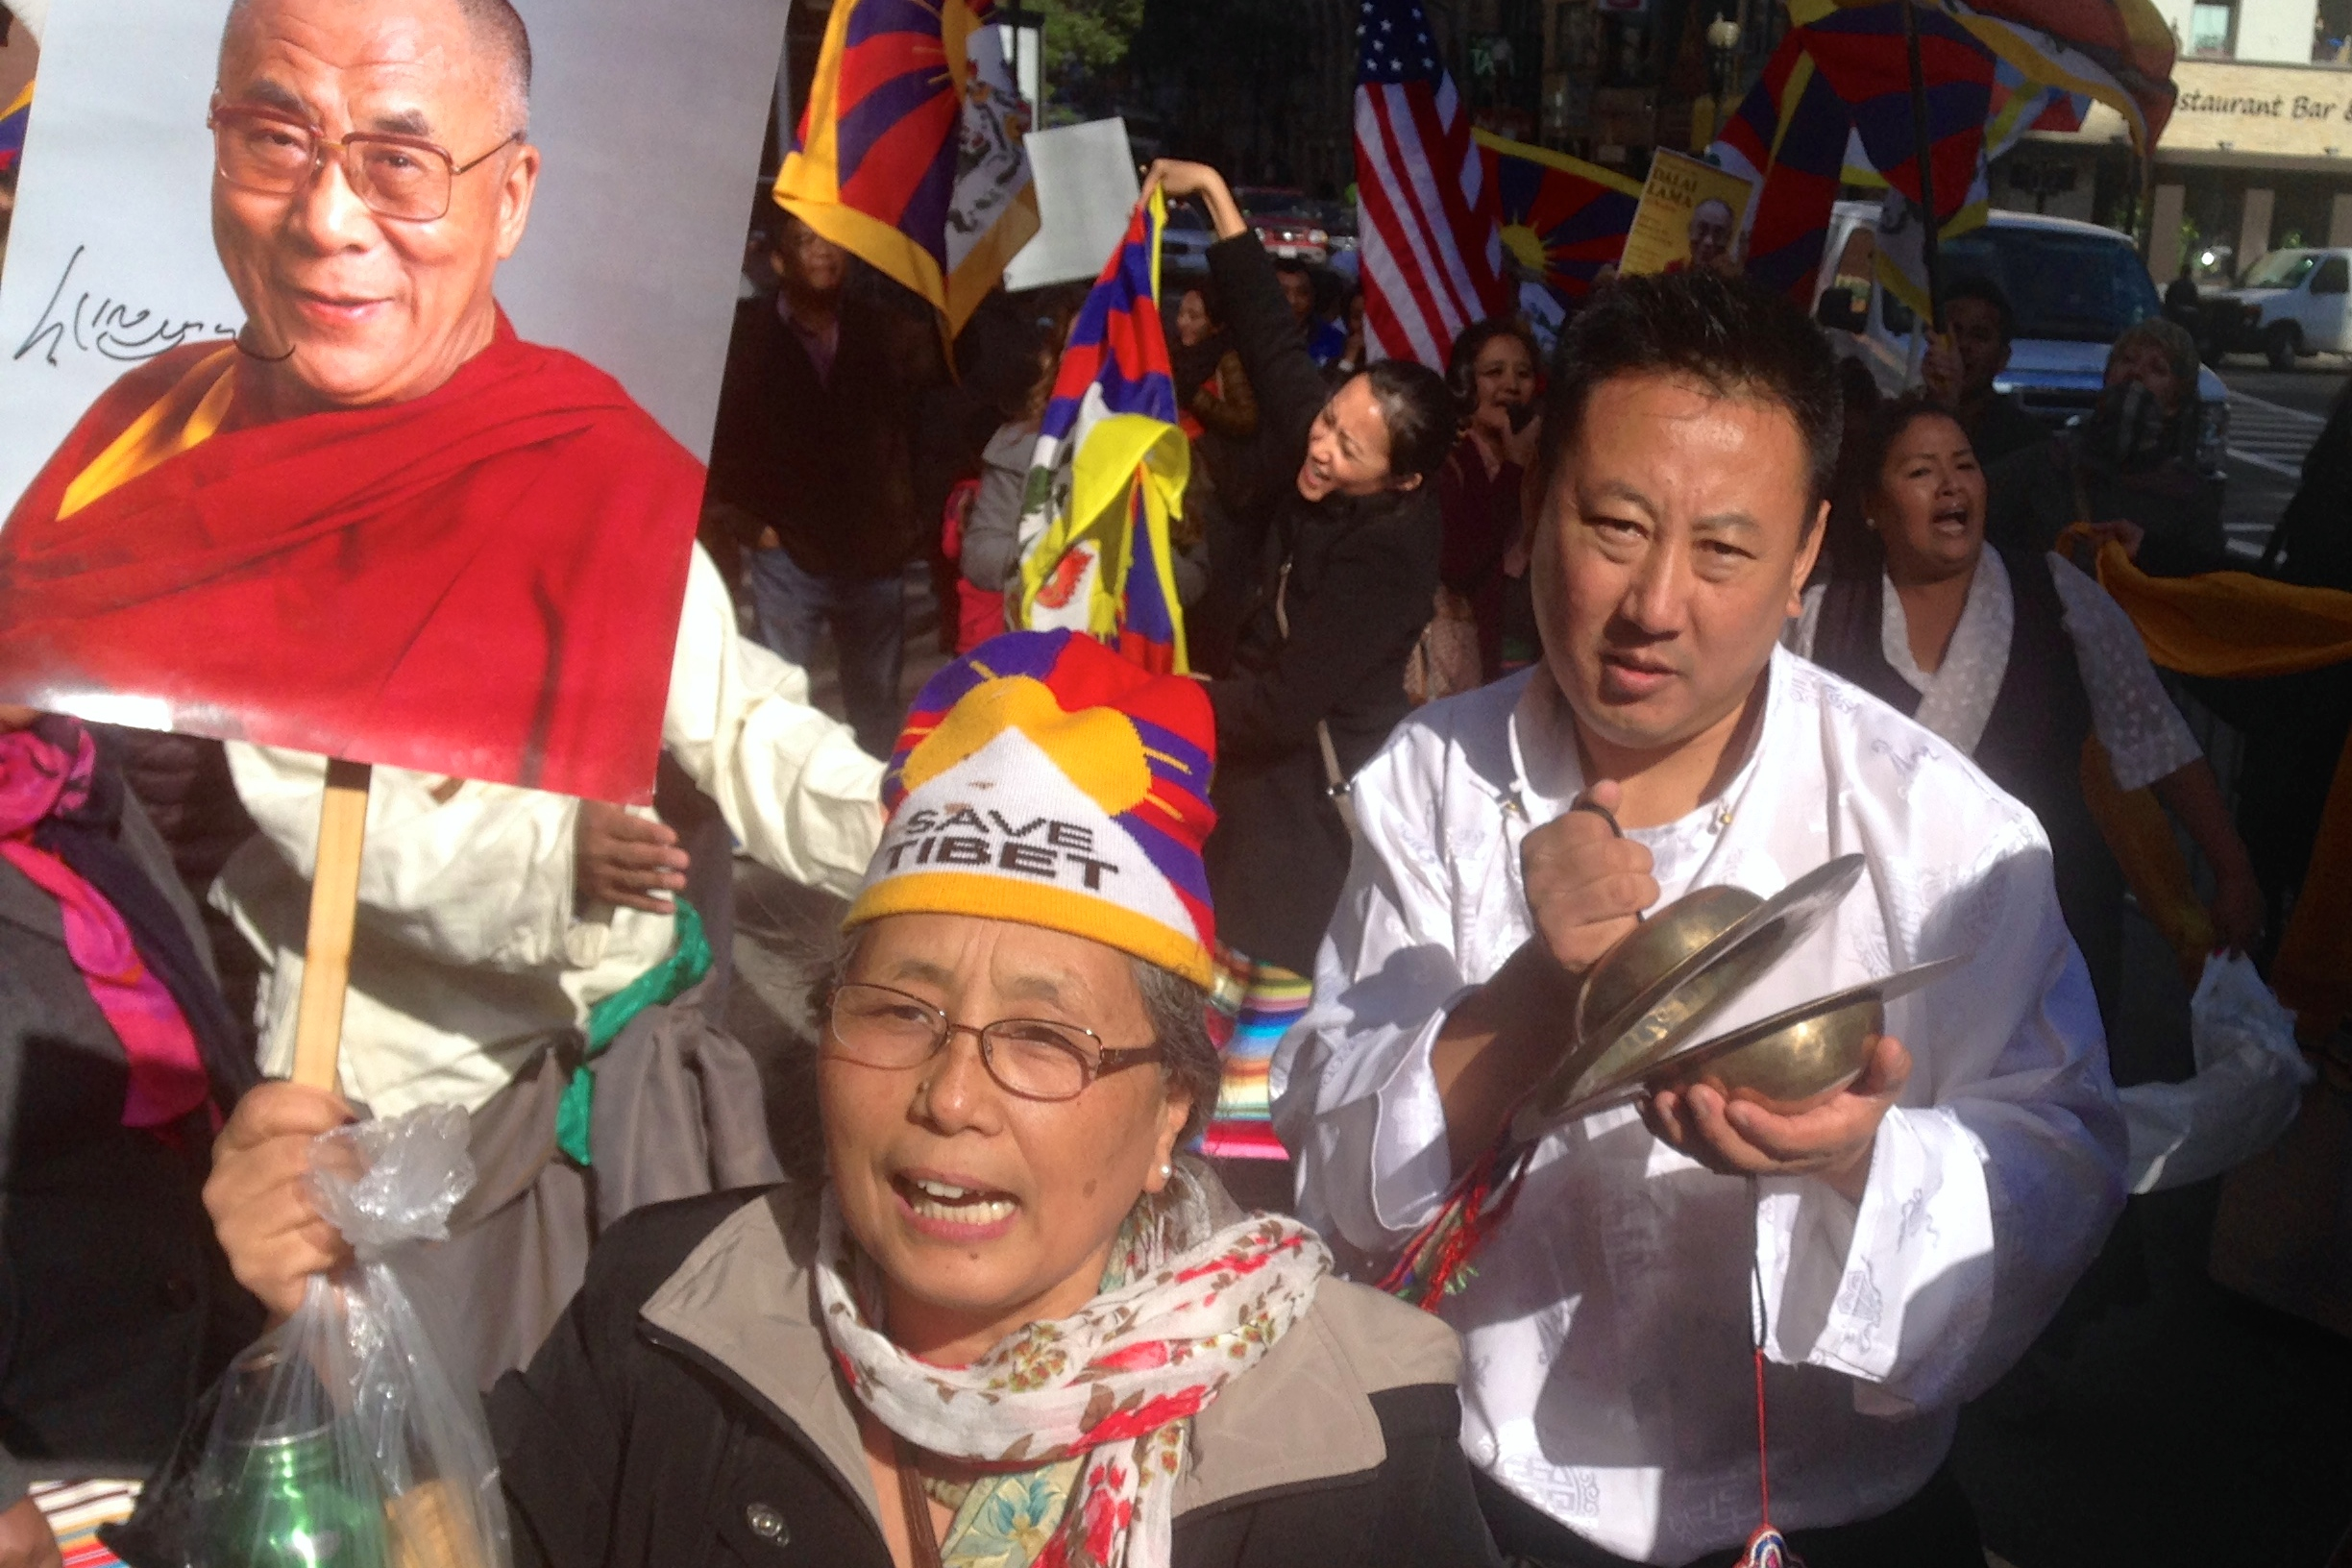 Tibetans turned out to welcome the Dalai Lama to Boston.